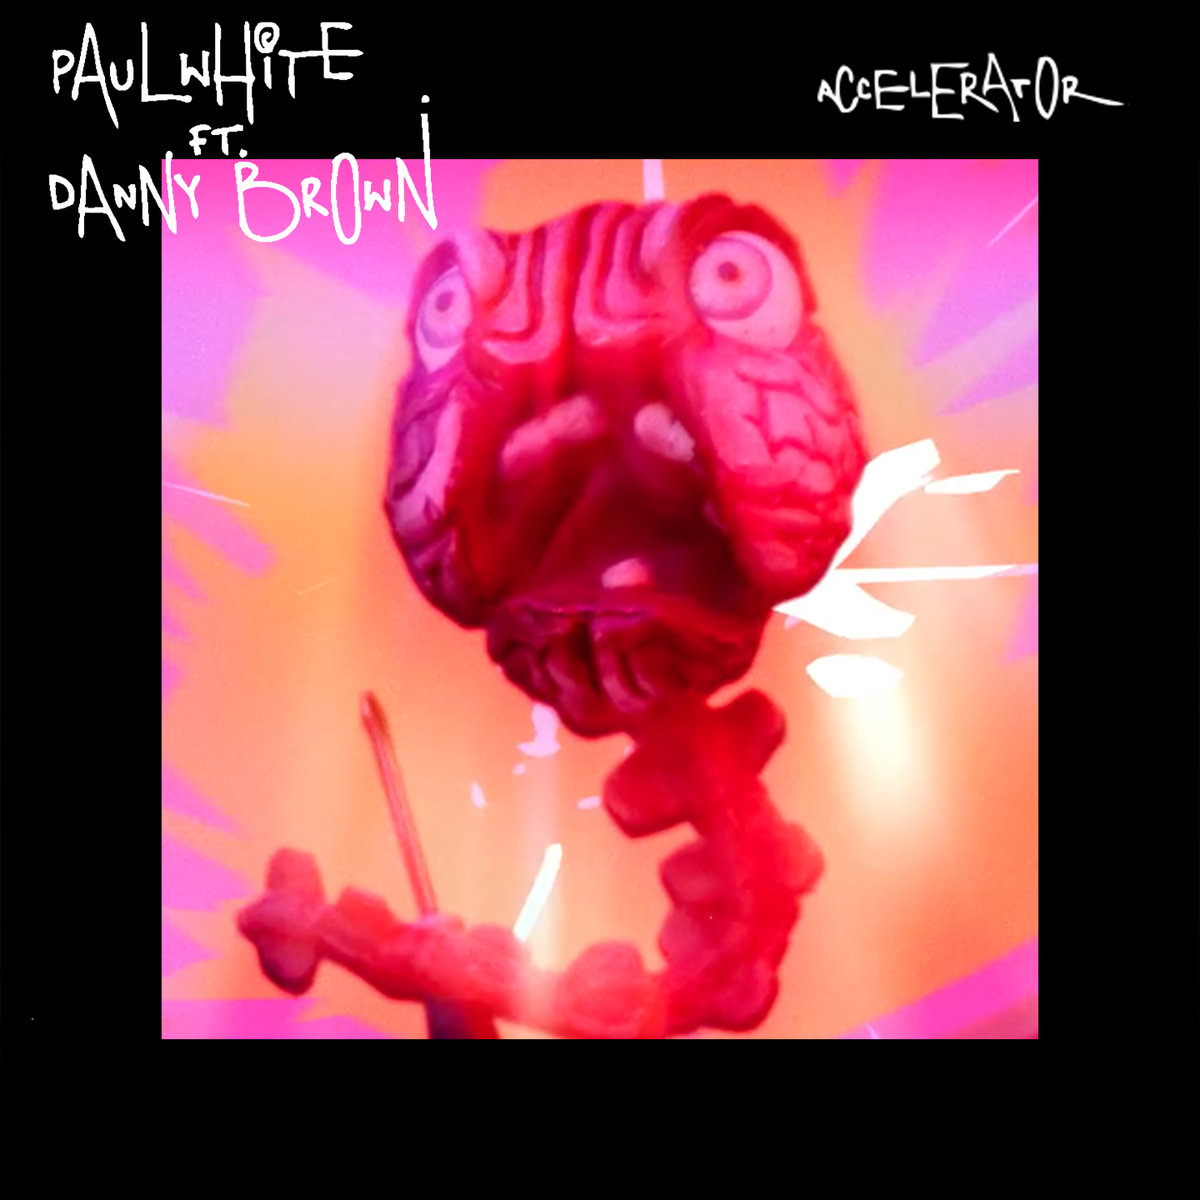 a3525288854 10 Danny Brown and Paul White release new Accelerator EP: Stream/download